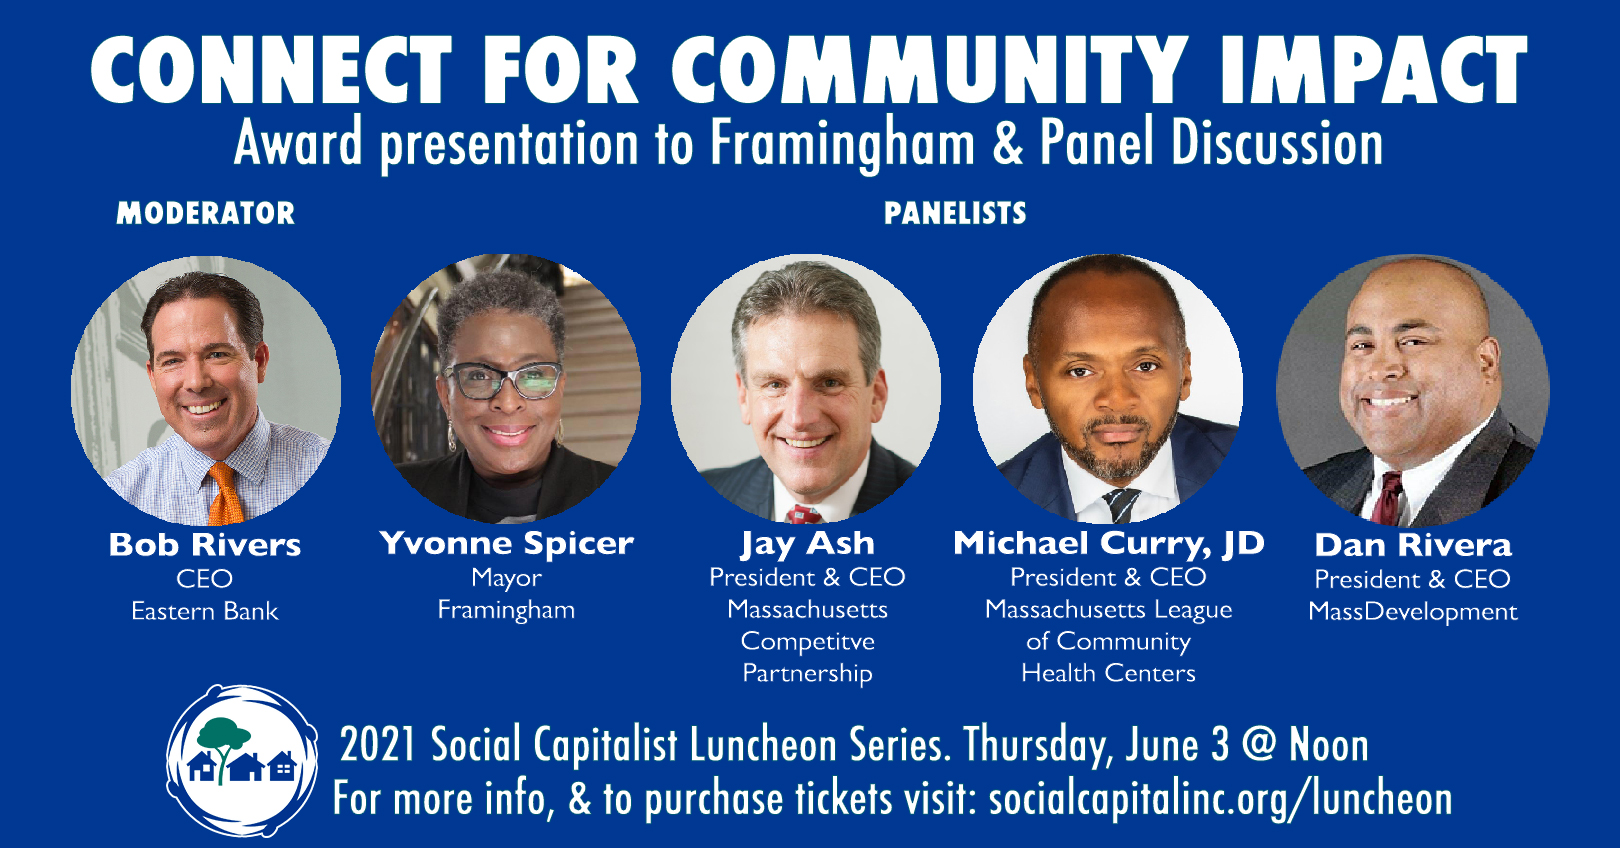 Connect for Community Impact Award & Panel Discussion